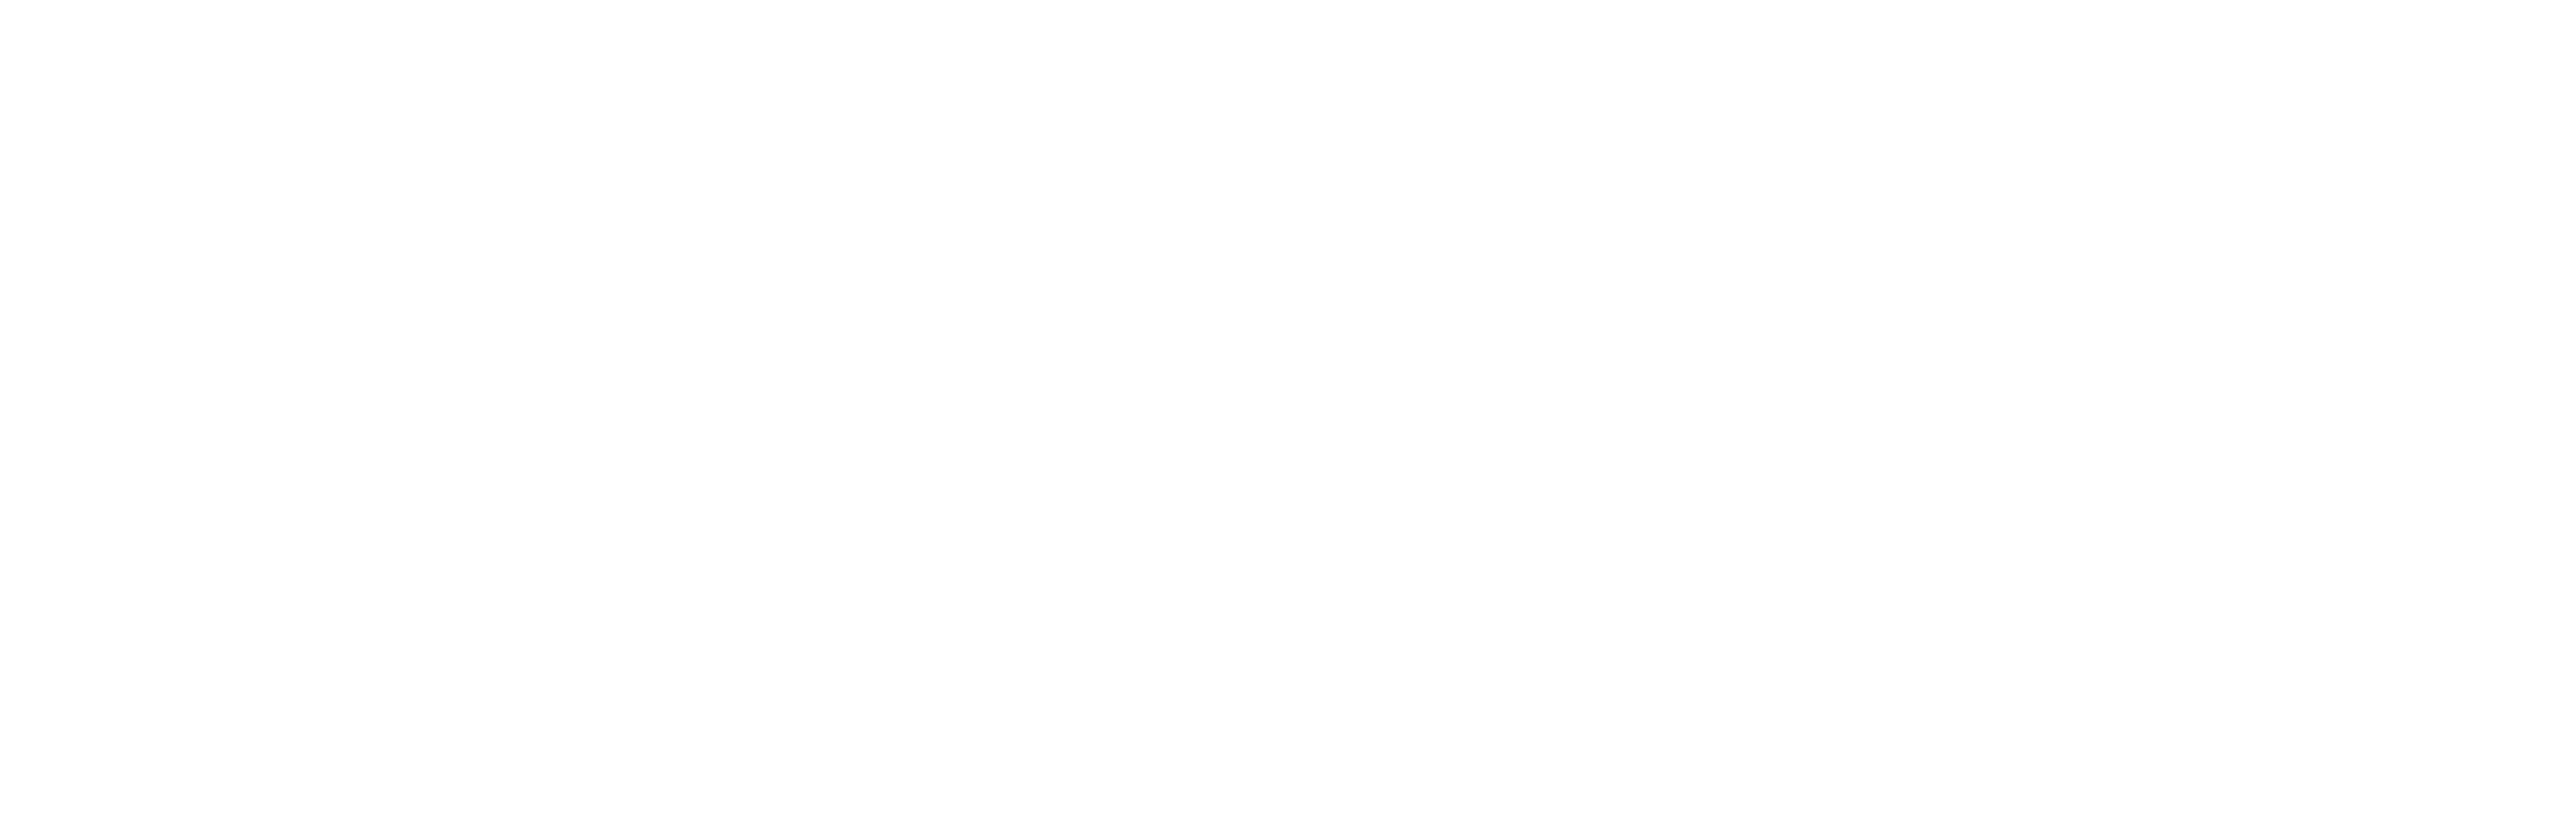 Made for Mission 2017